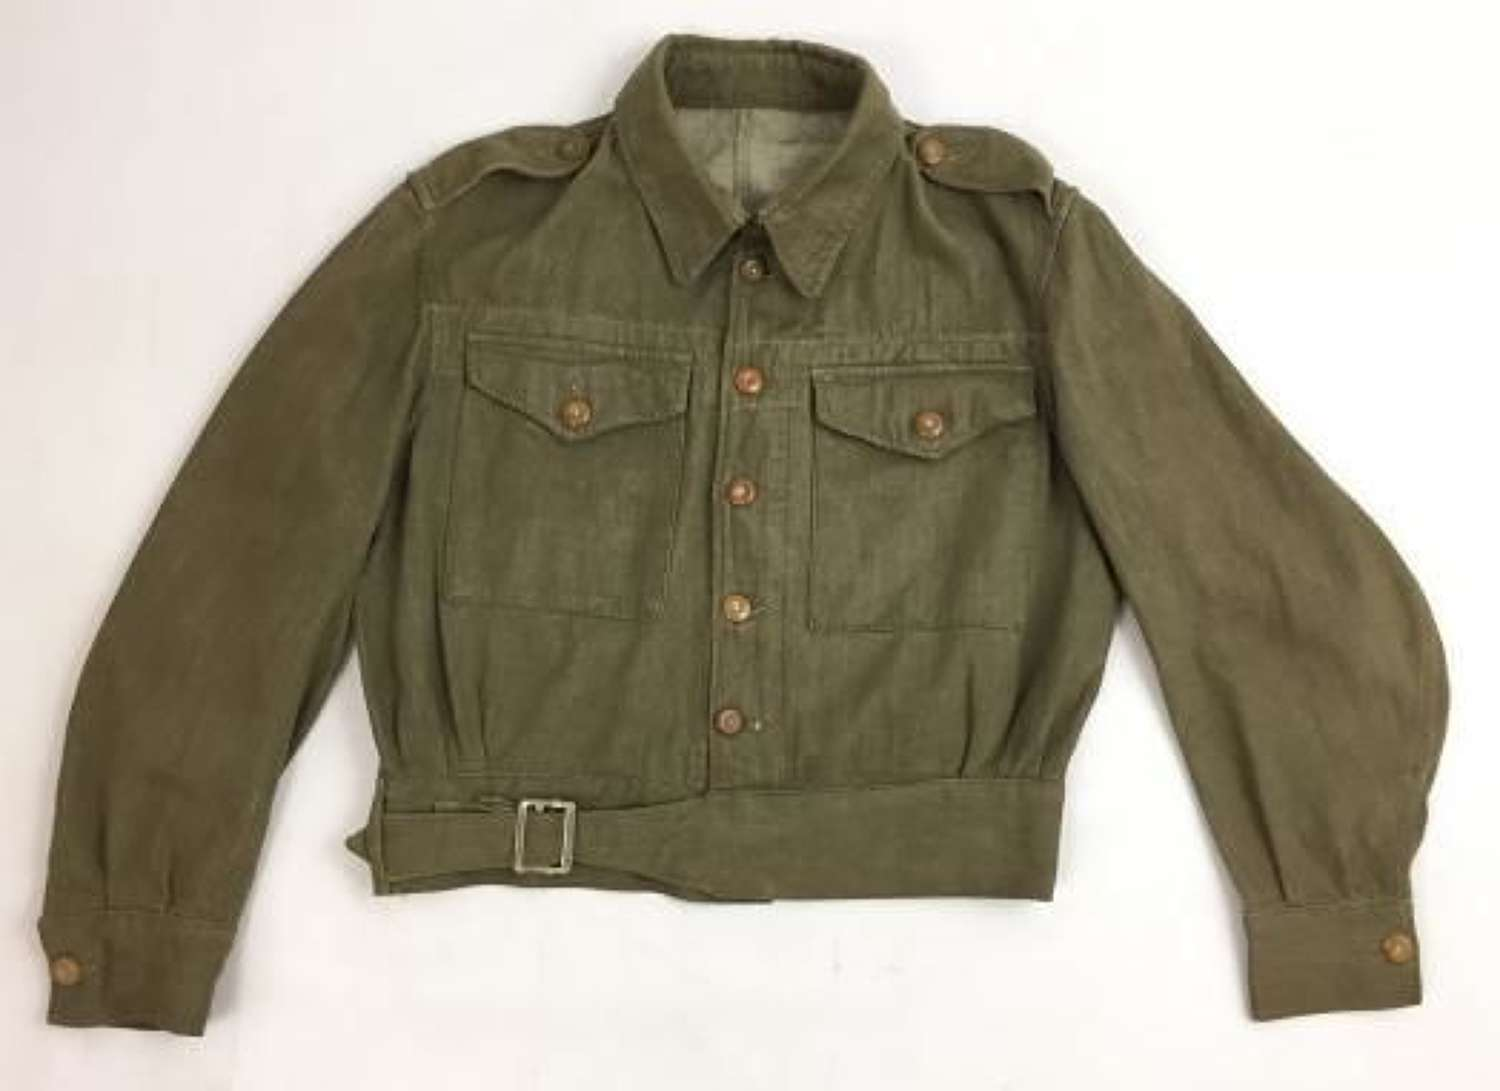 Original 1952 Dated British Army Denim Blouse - Size No.4